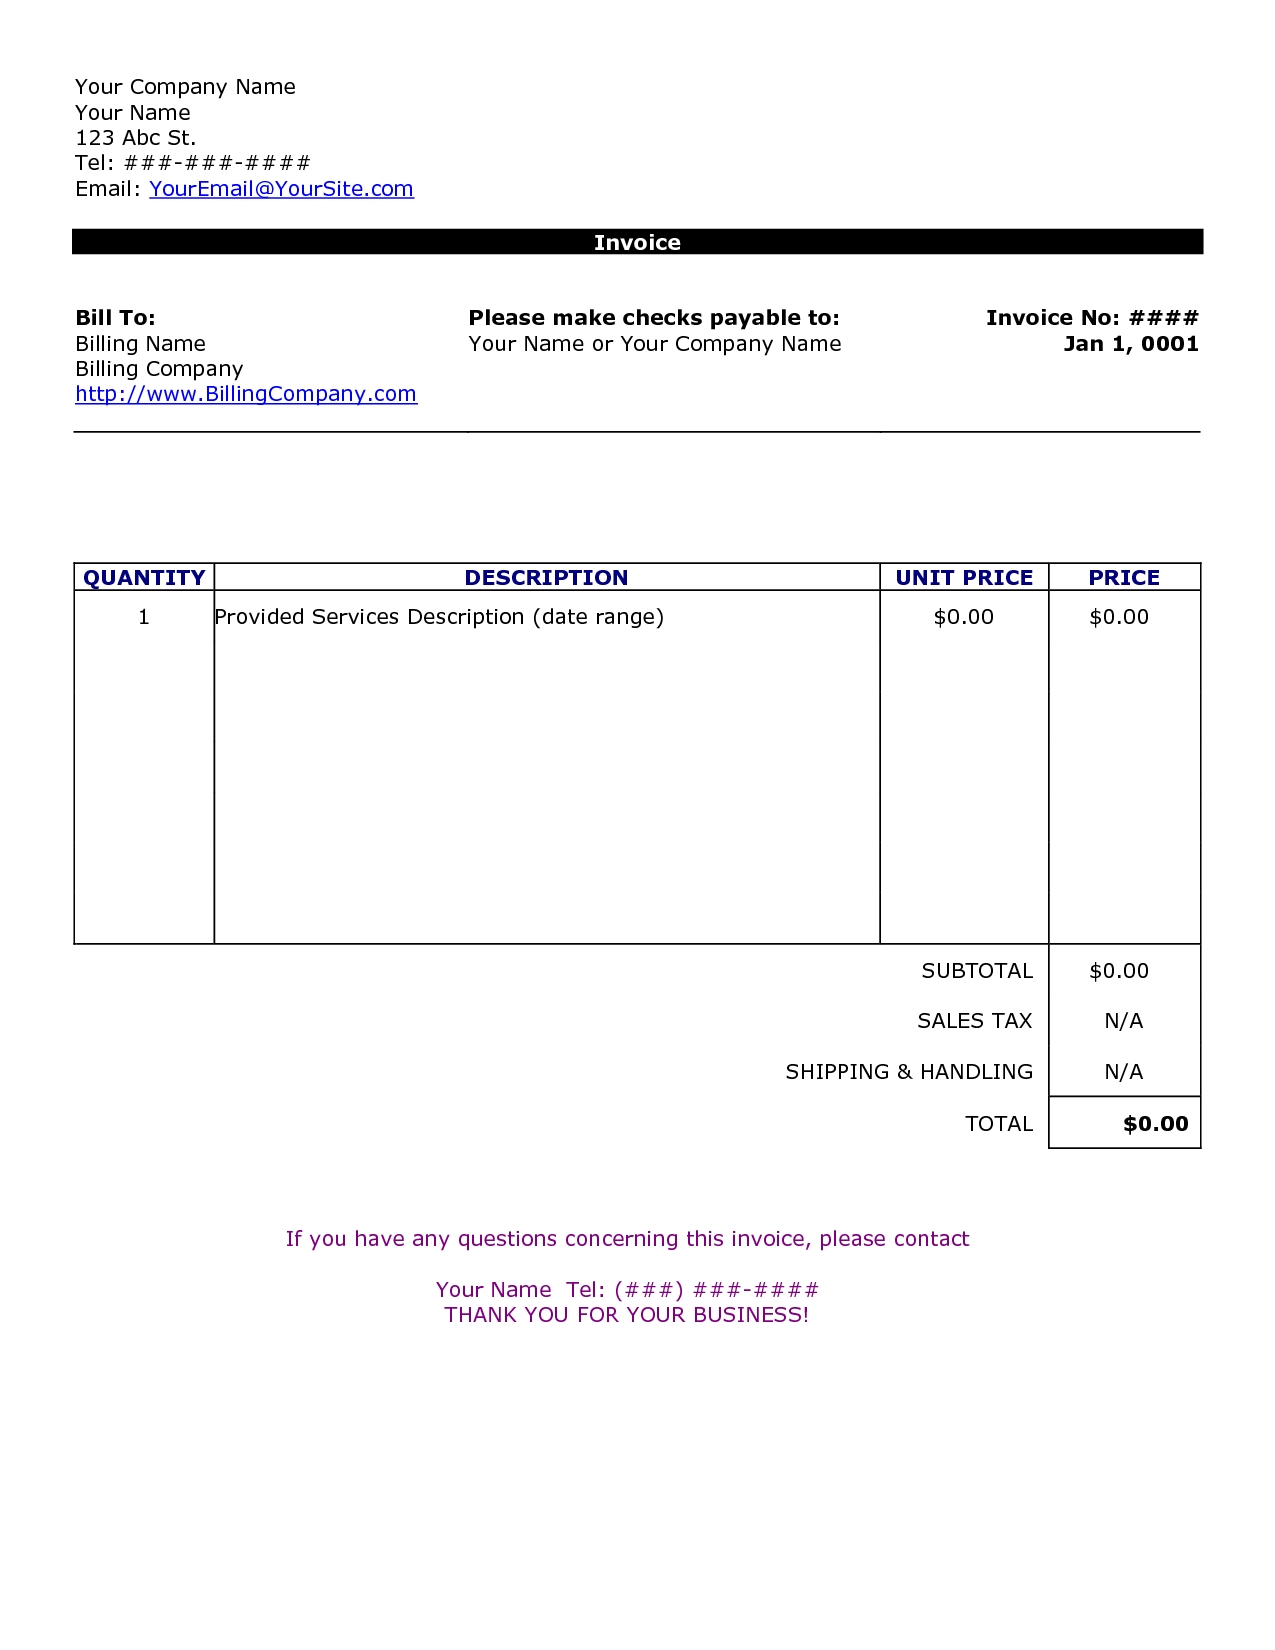 Word Document Invoice Template Invoice Example - Free invoice word template